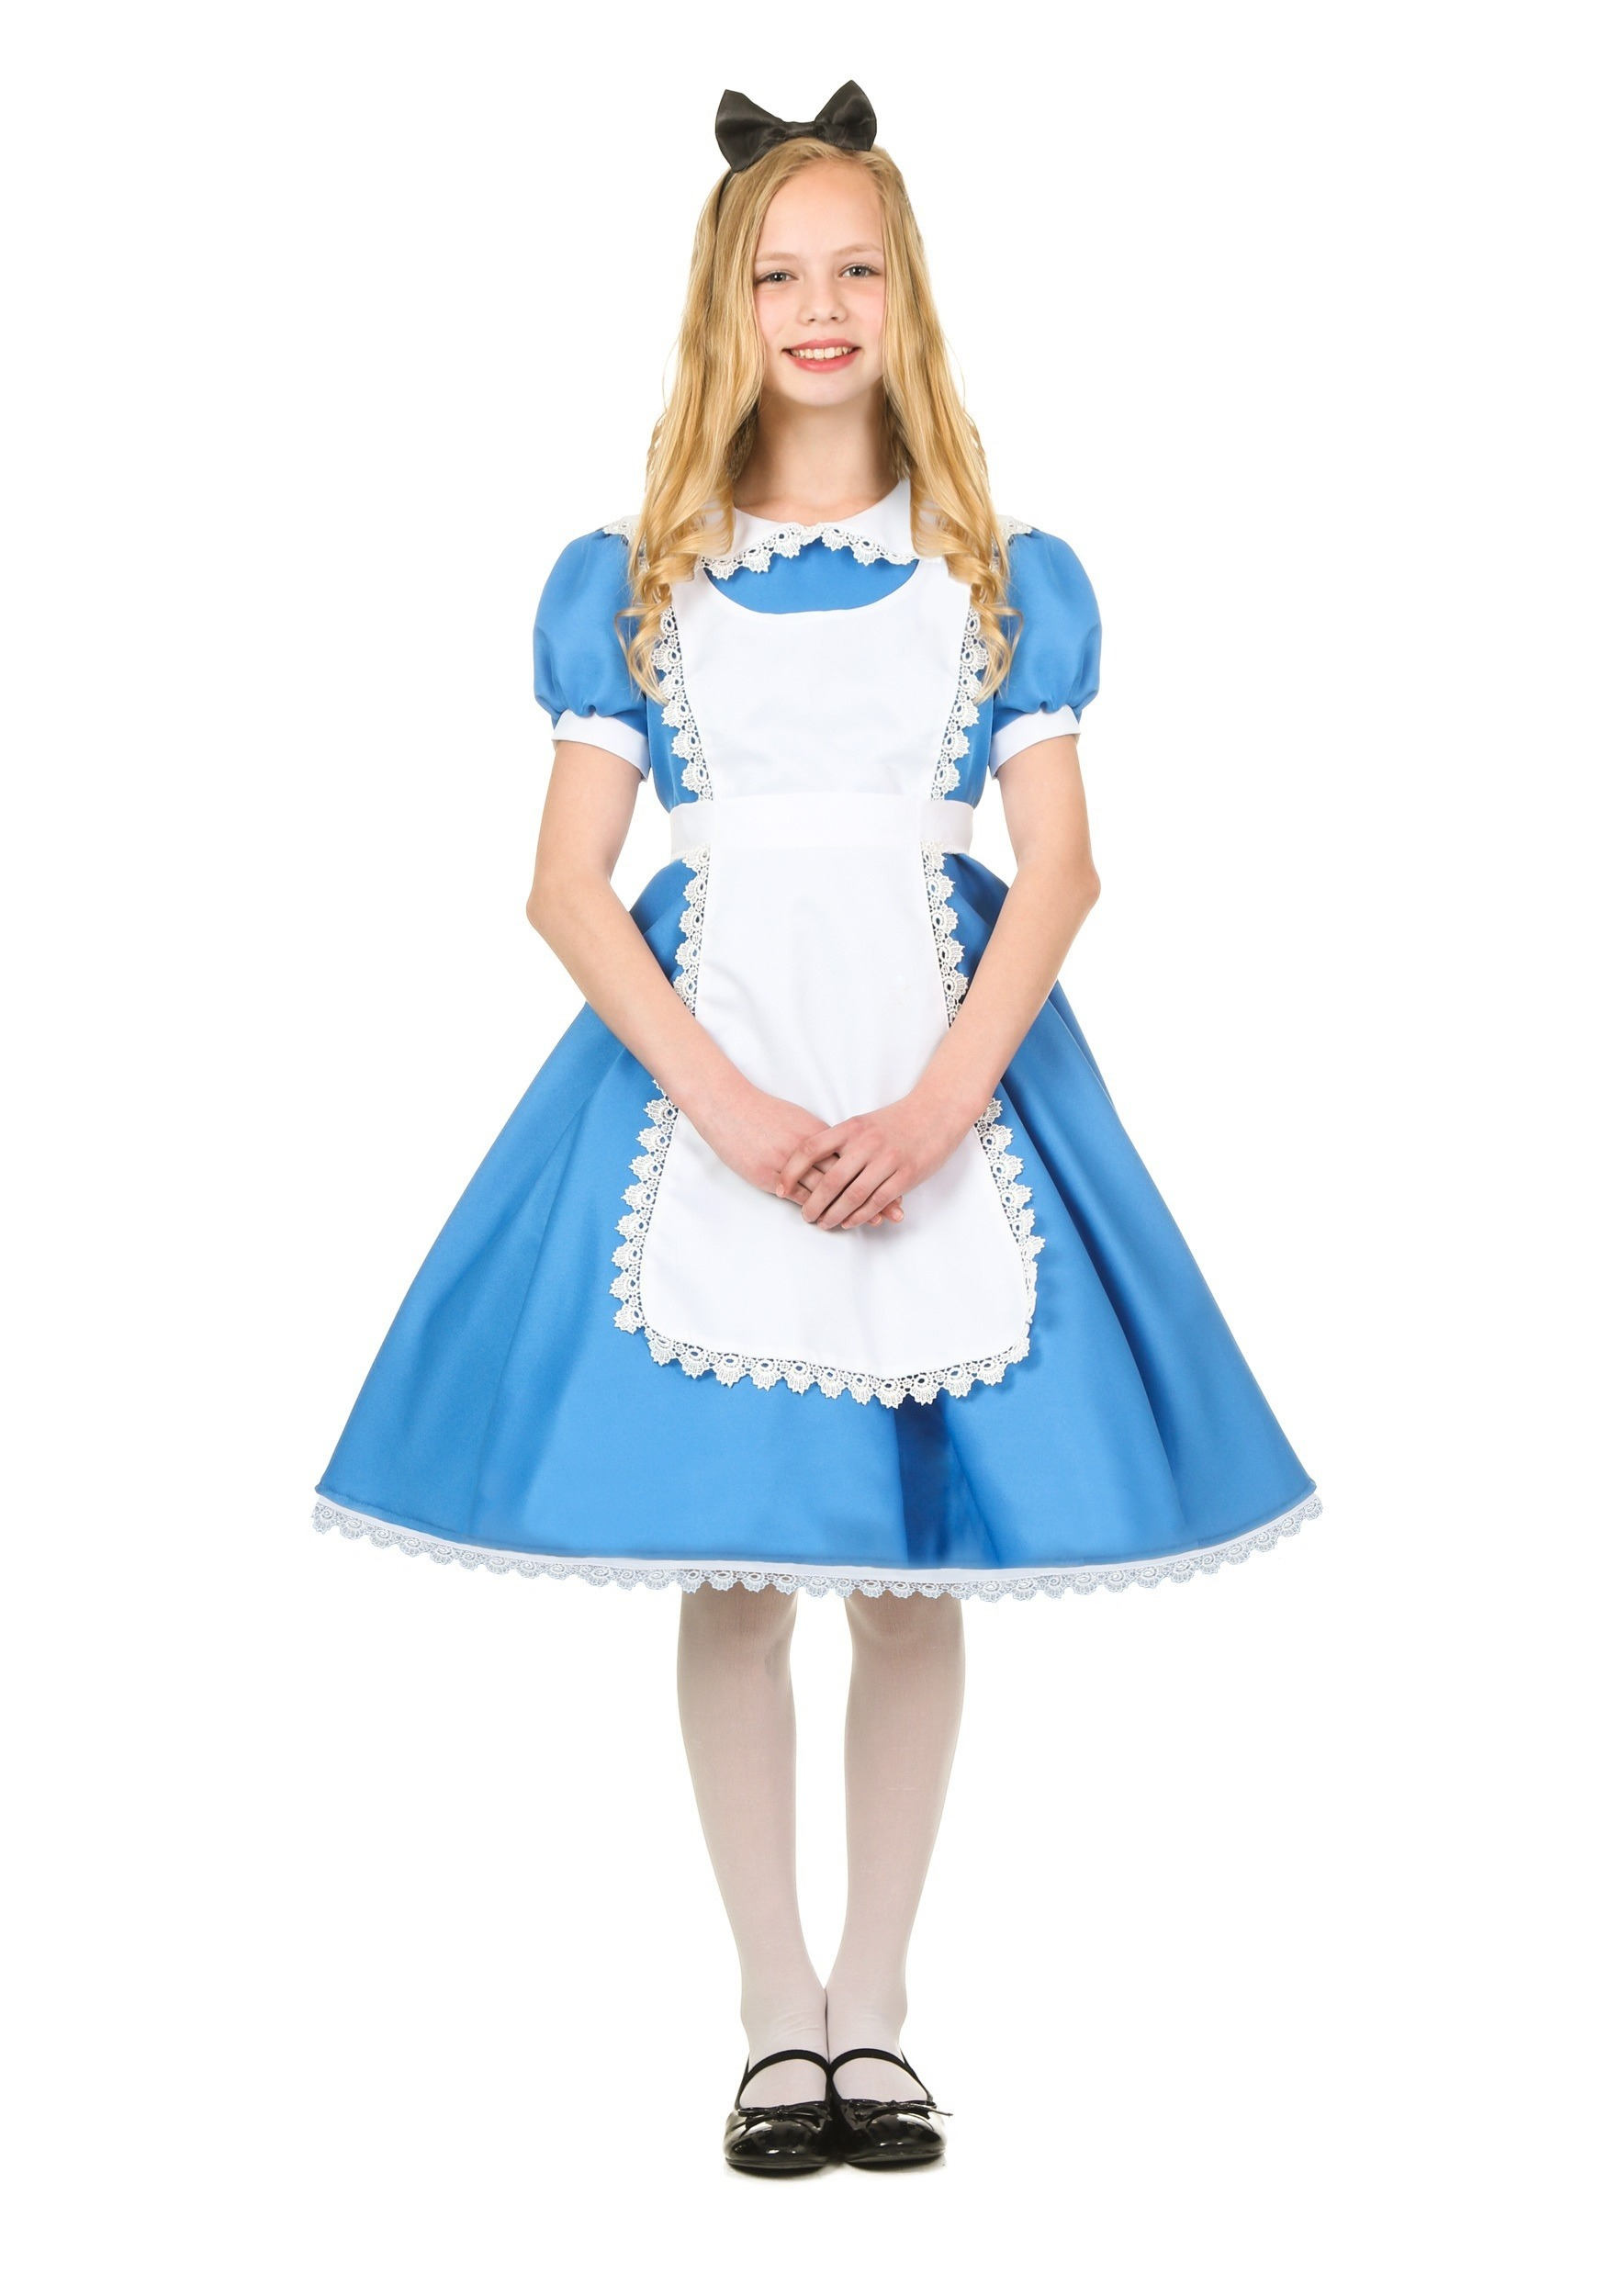 The Alice in Wonderland Dresses